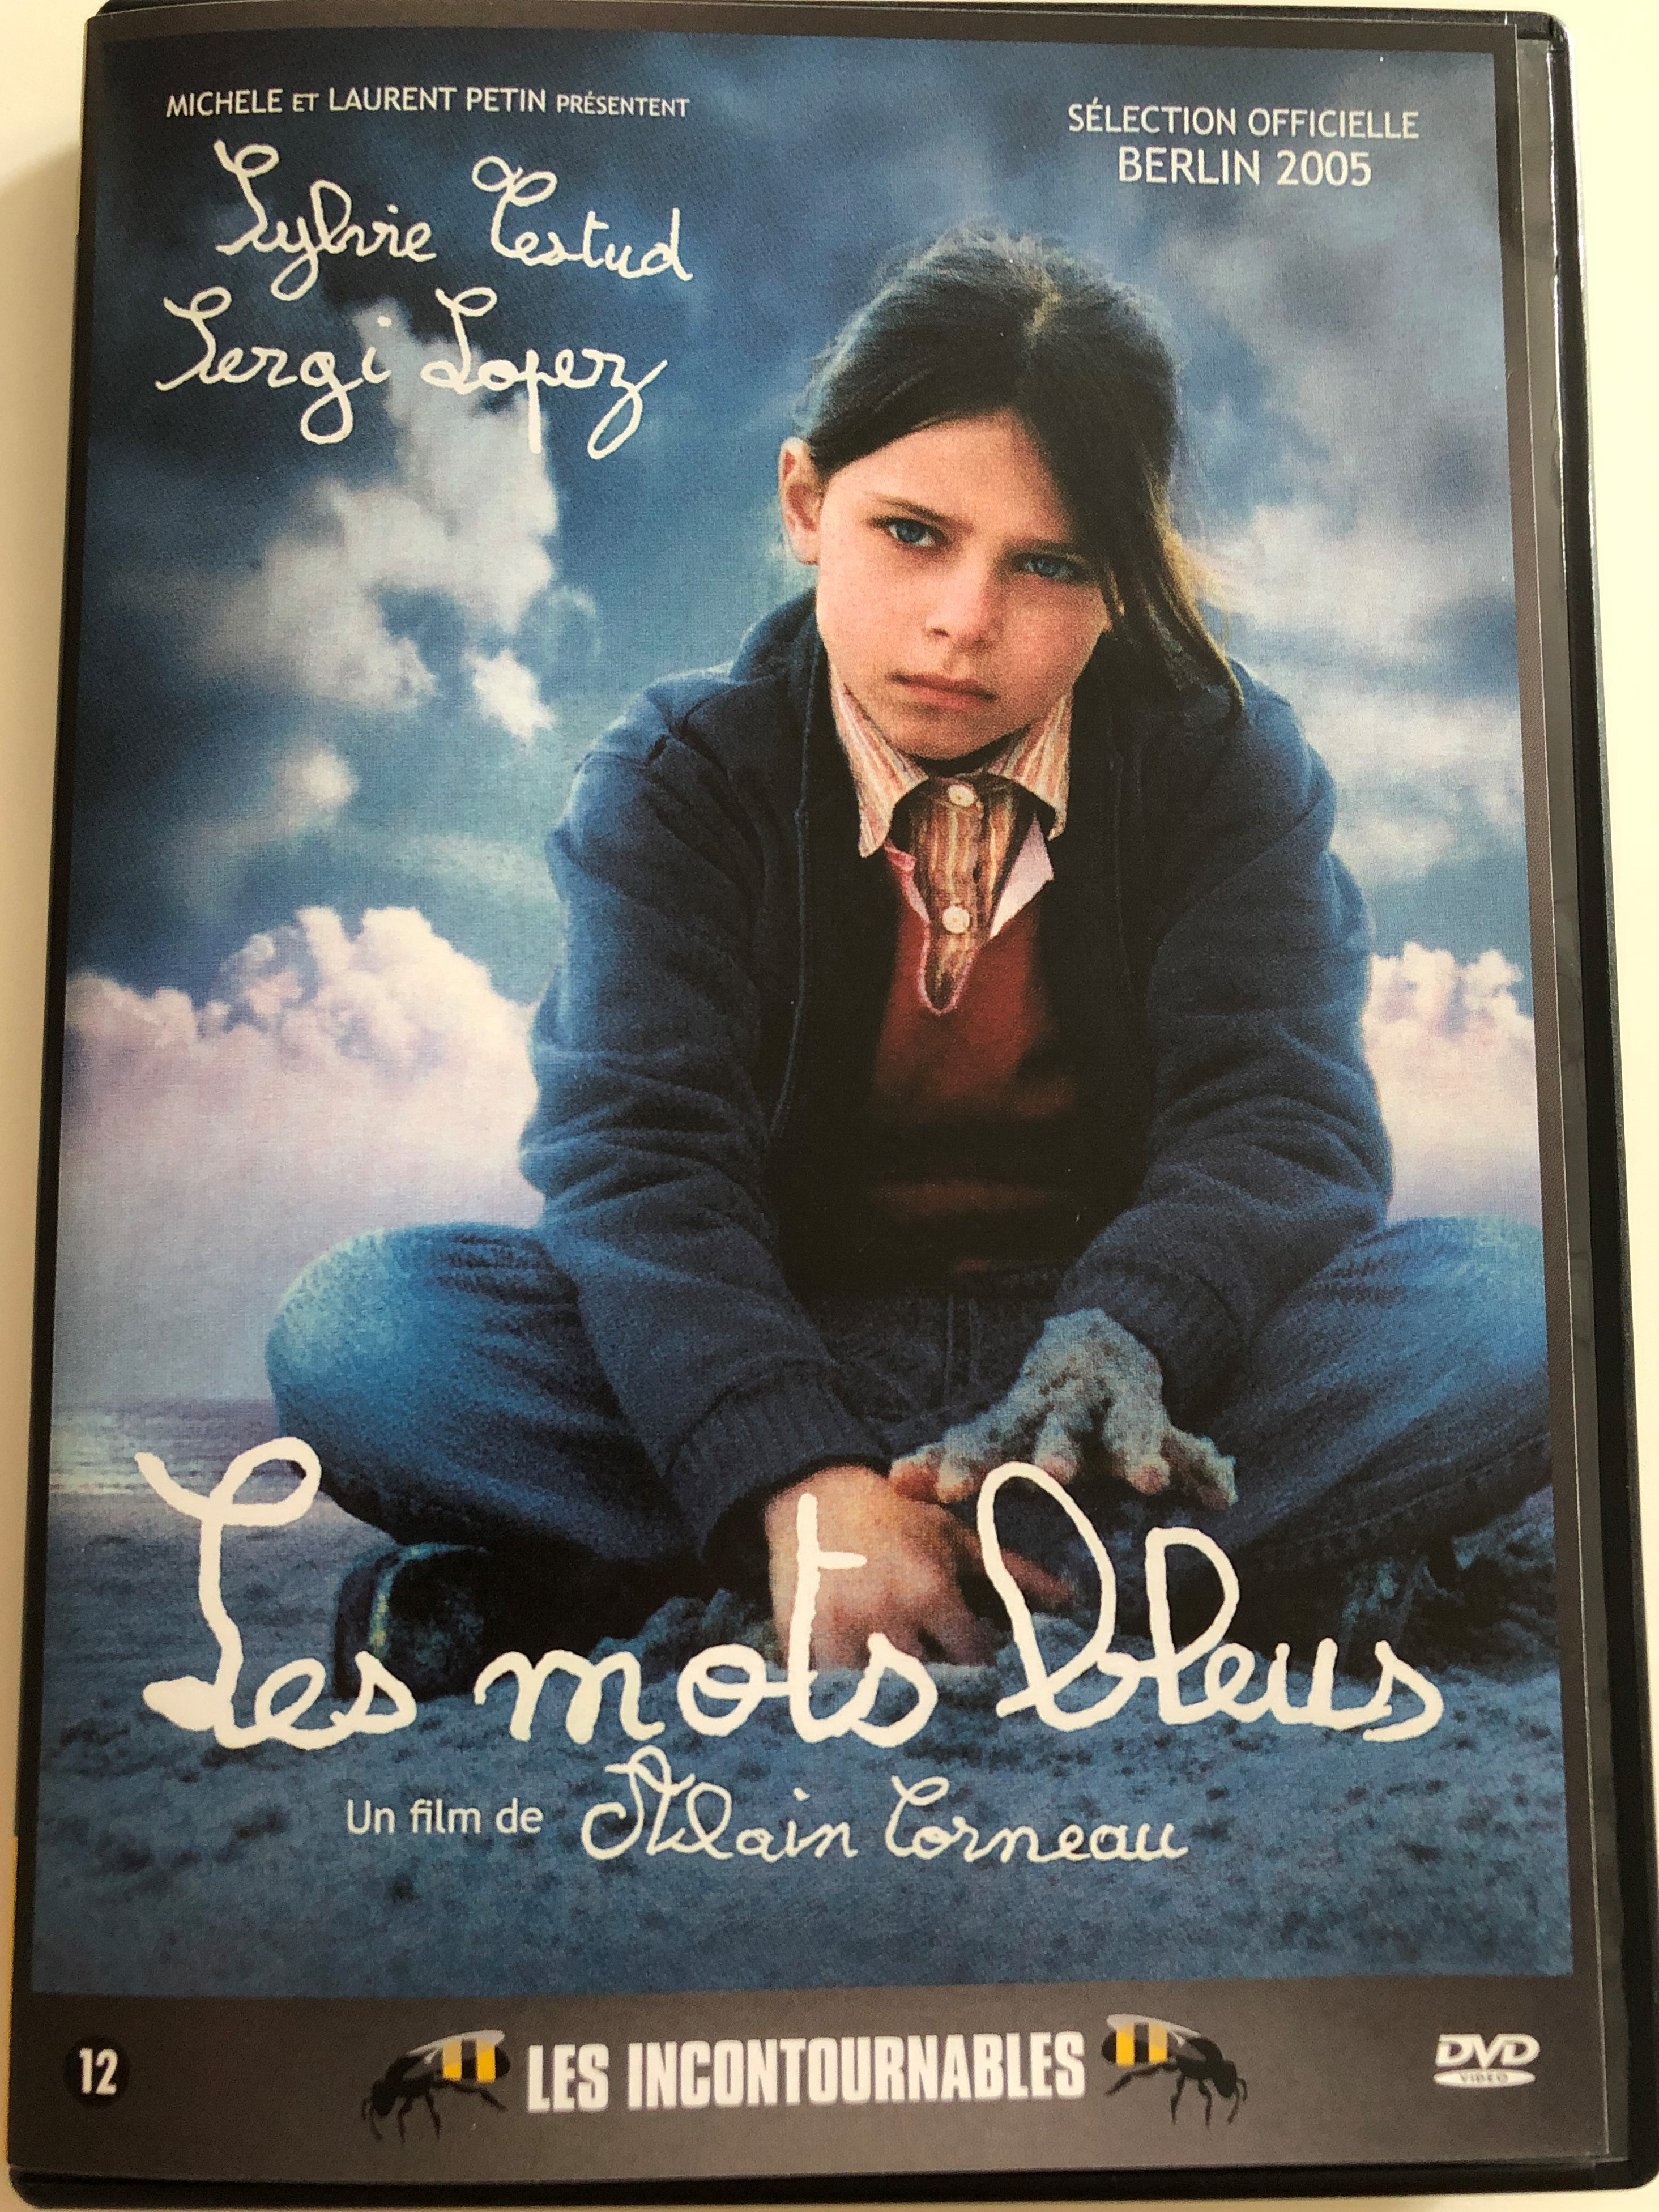 les-mots-bleus-dvd-2005-words-in-blue-directed-by-alain-corneau-starring-sylvie-testud-sergi-l-pez-1-.jpg